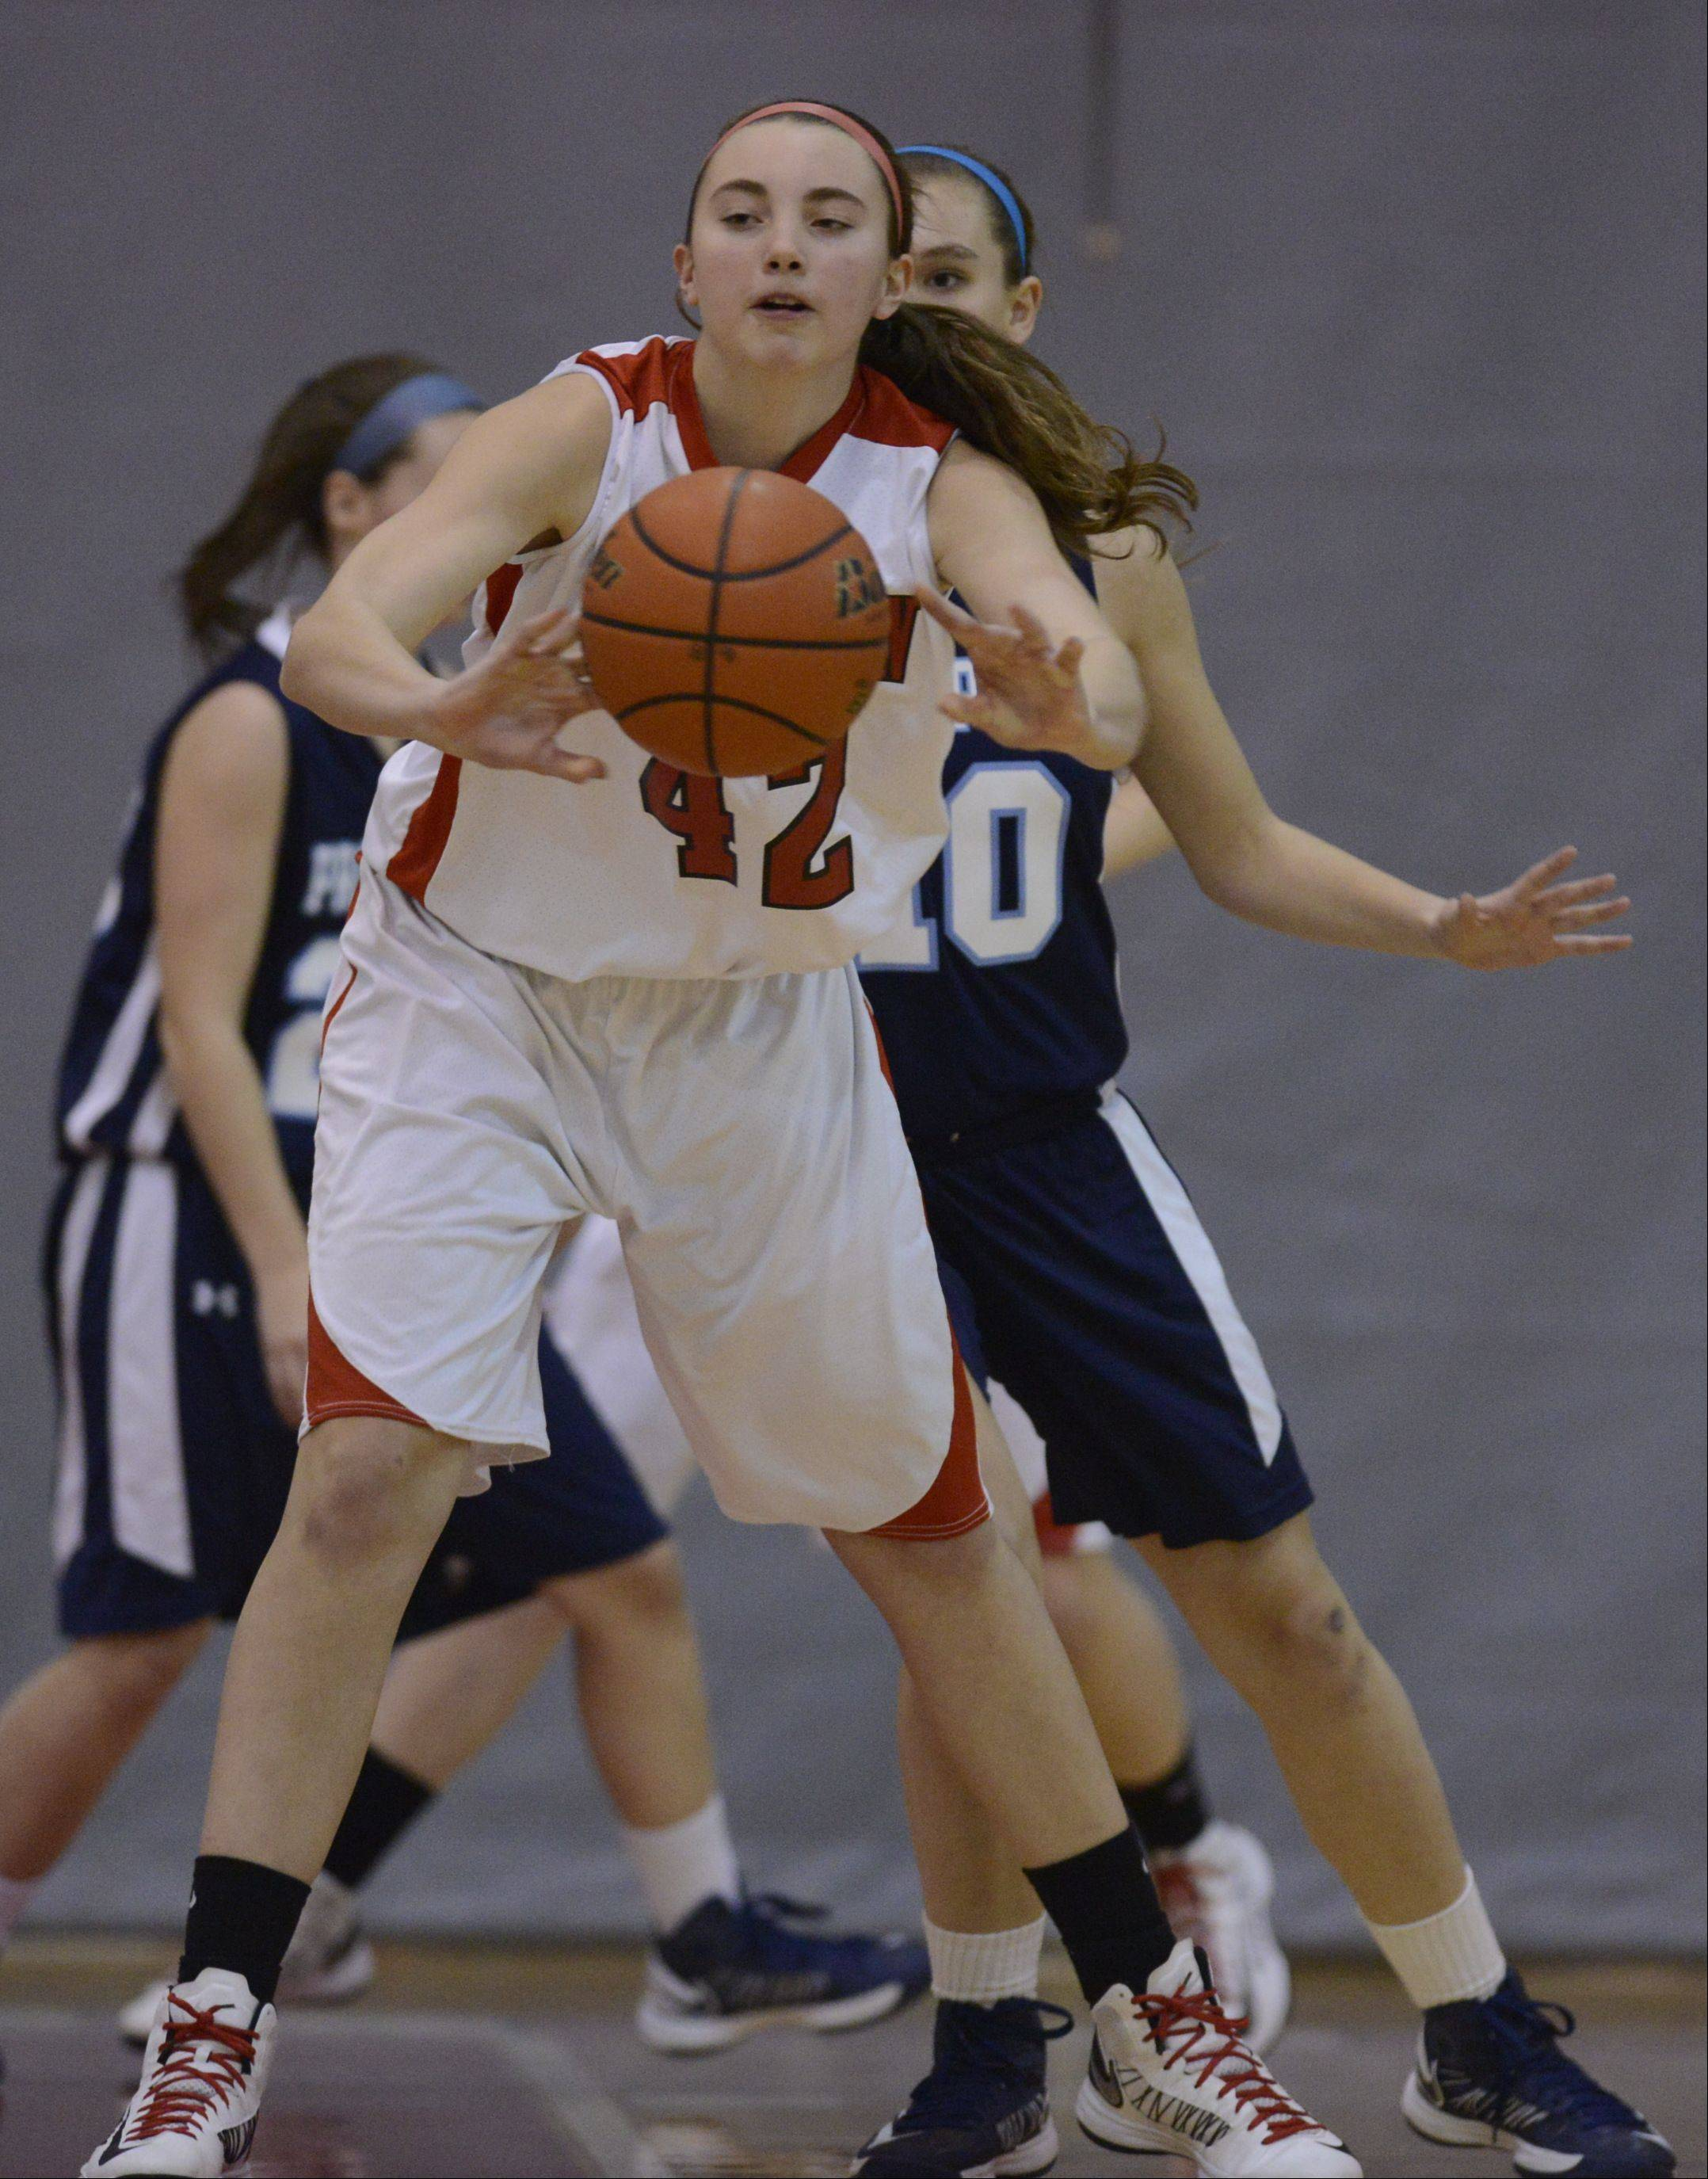 Images from the Barrington vs. Prospect girls basketball game on Tuesday, January 8th, in Barrington.